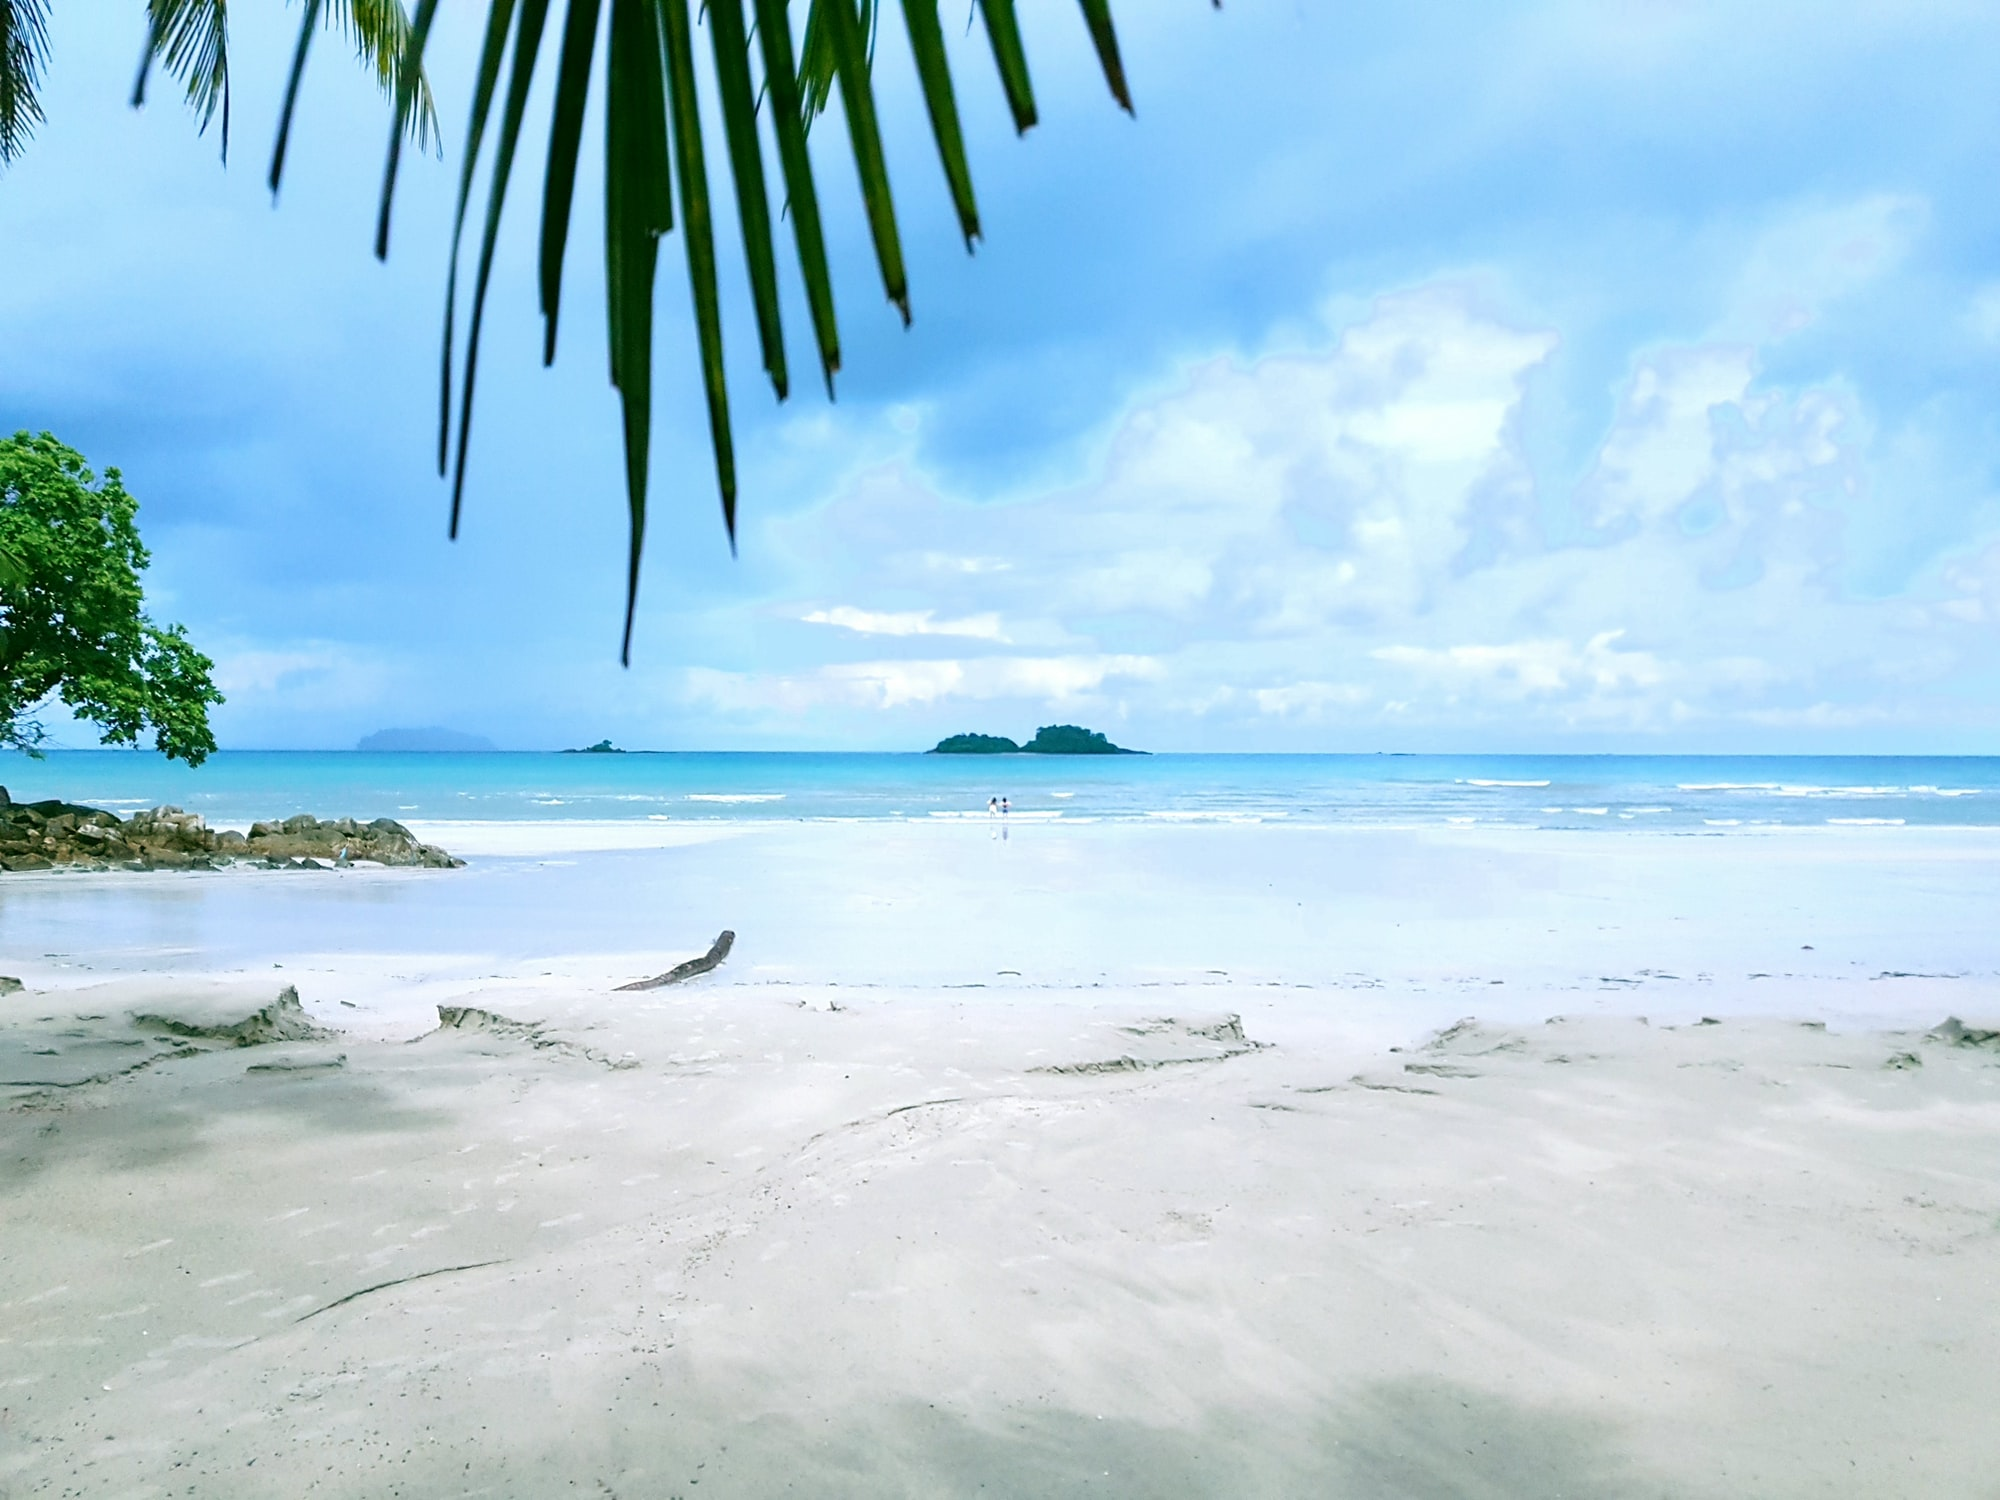 Koh Chang Thailand whitesand beach empty lovely vacant beach